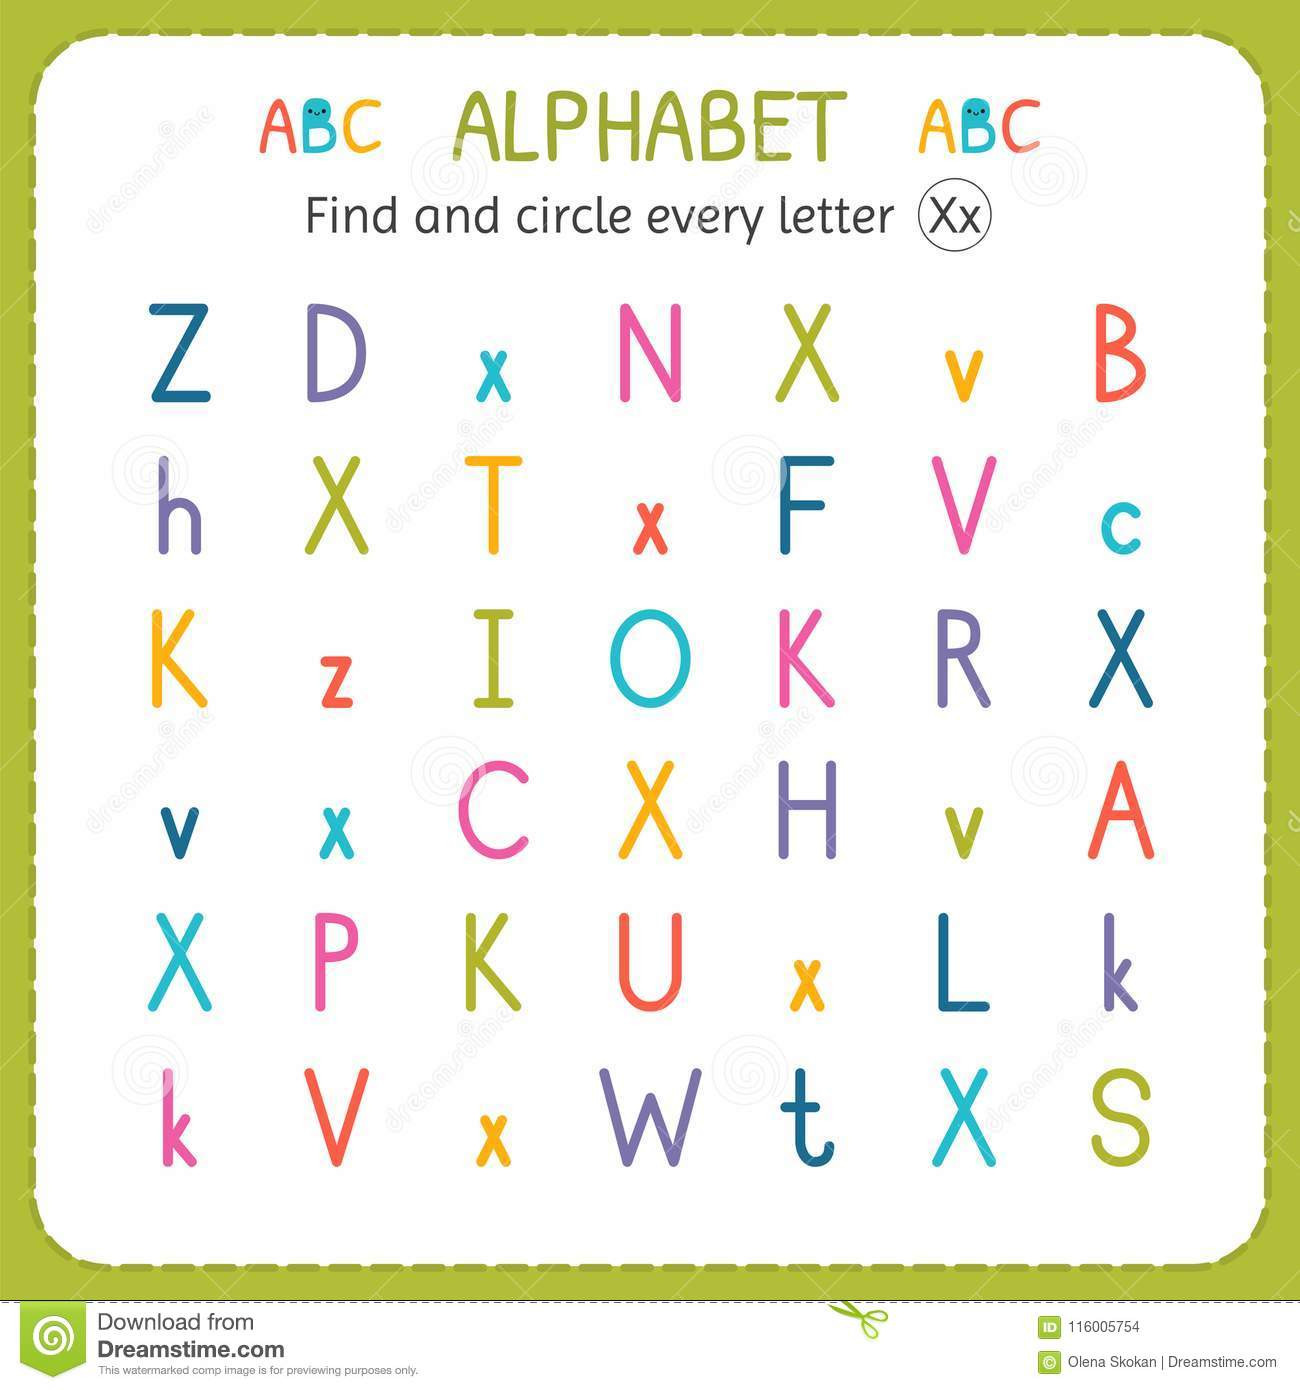 Preschool Letter X Worksheets Find and Circle Every Letter X Worksheet for Kindergarten